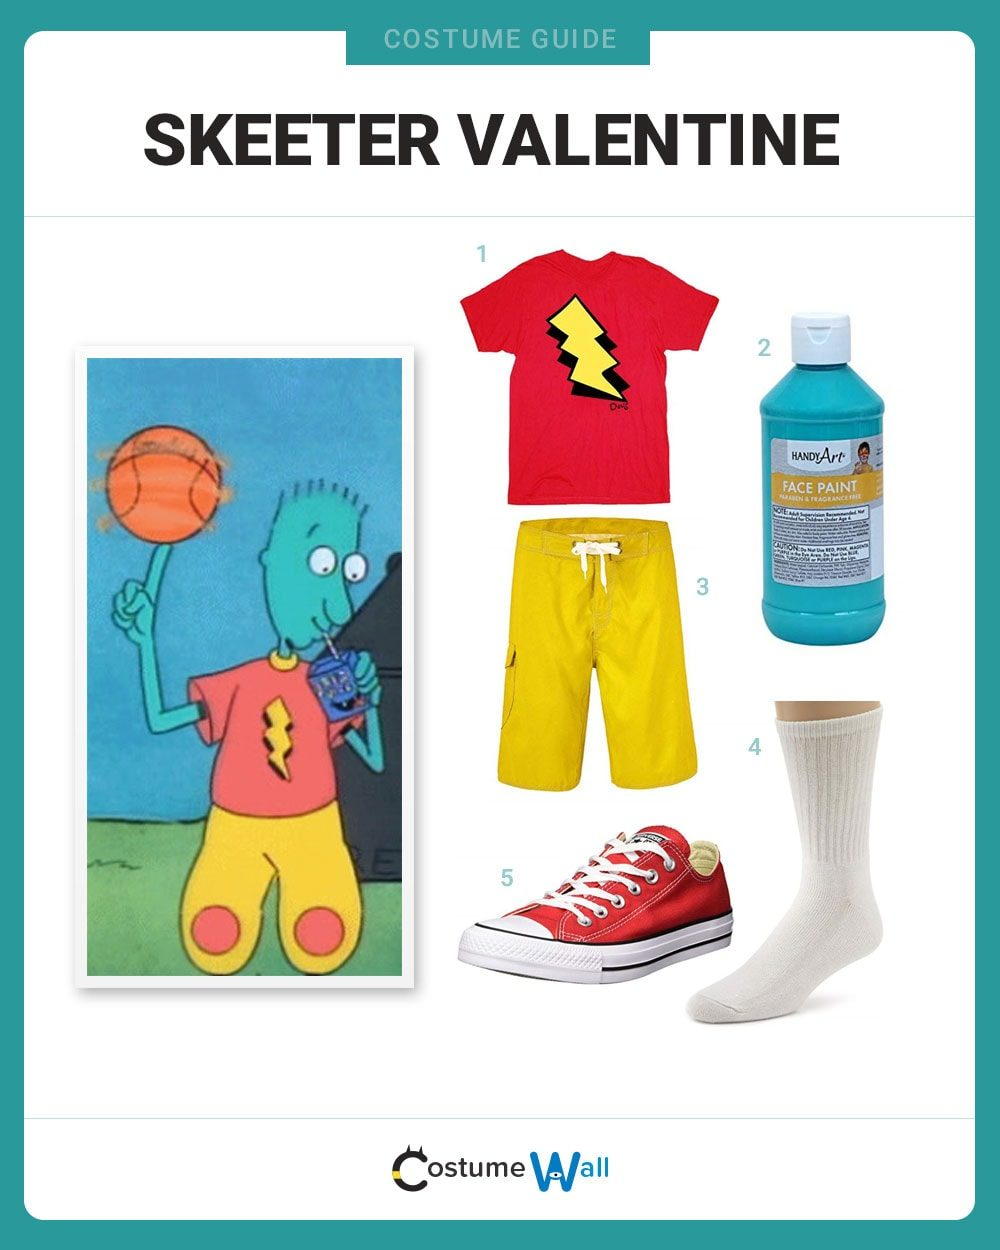 Skeeter Valentine Costume Guide